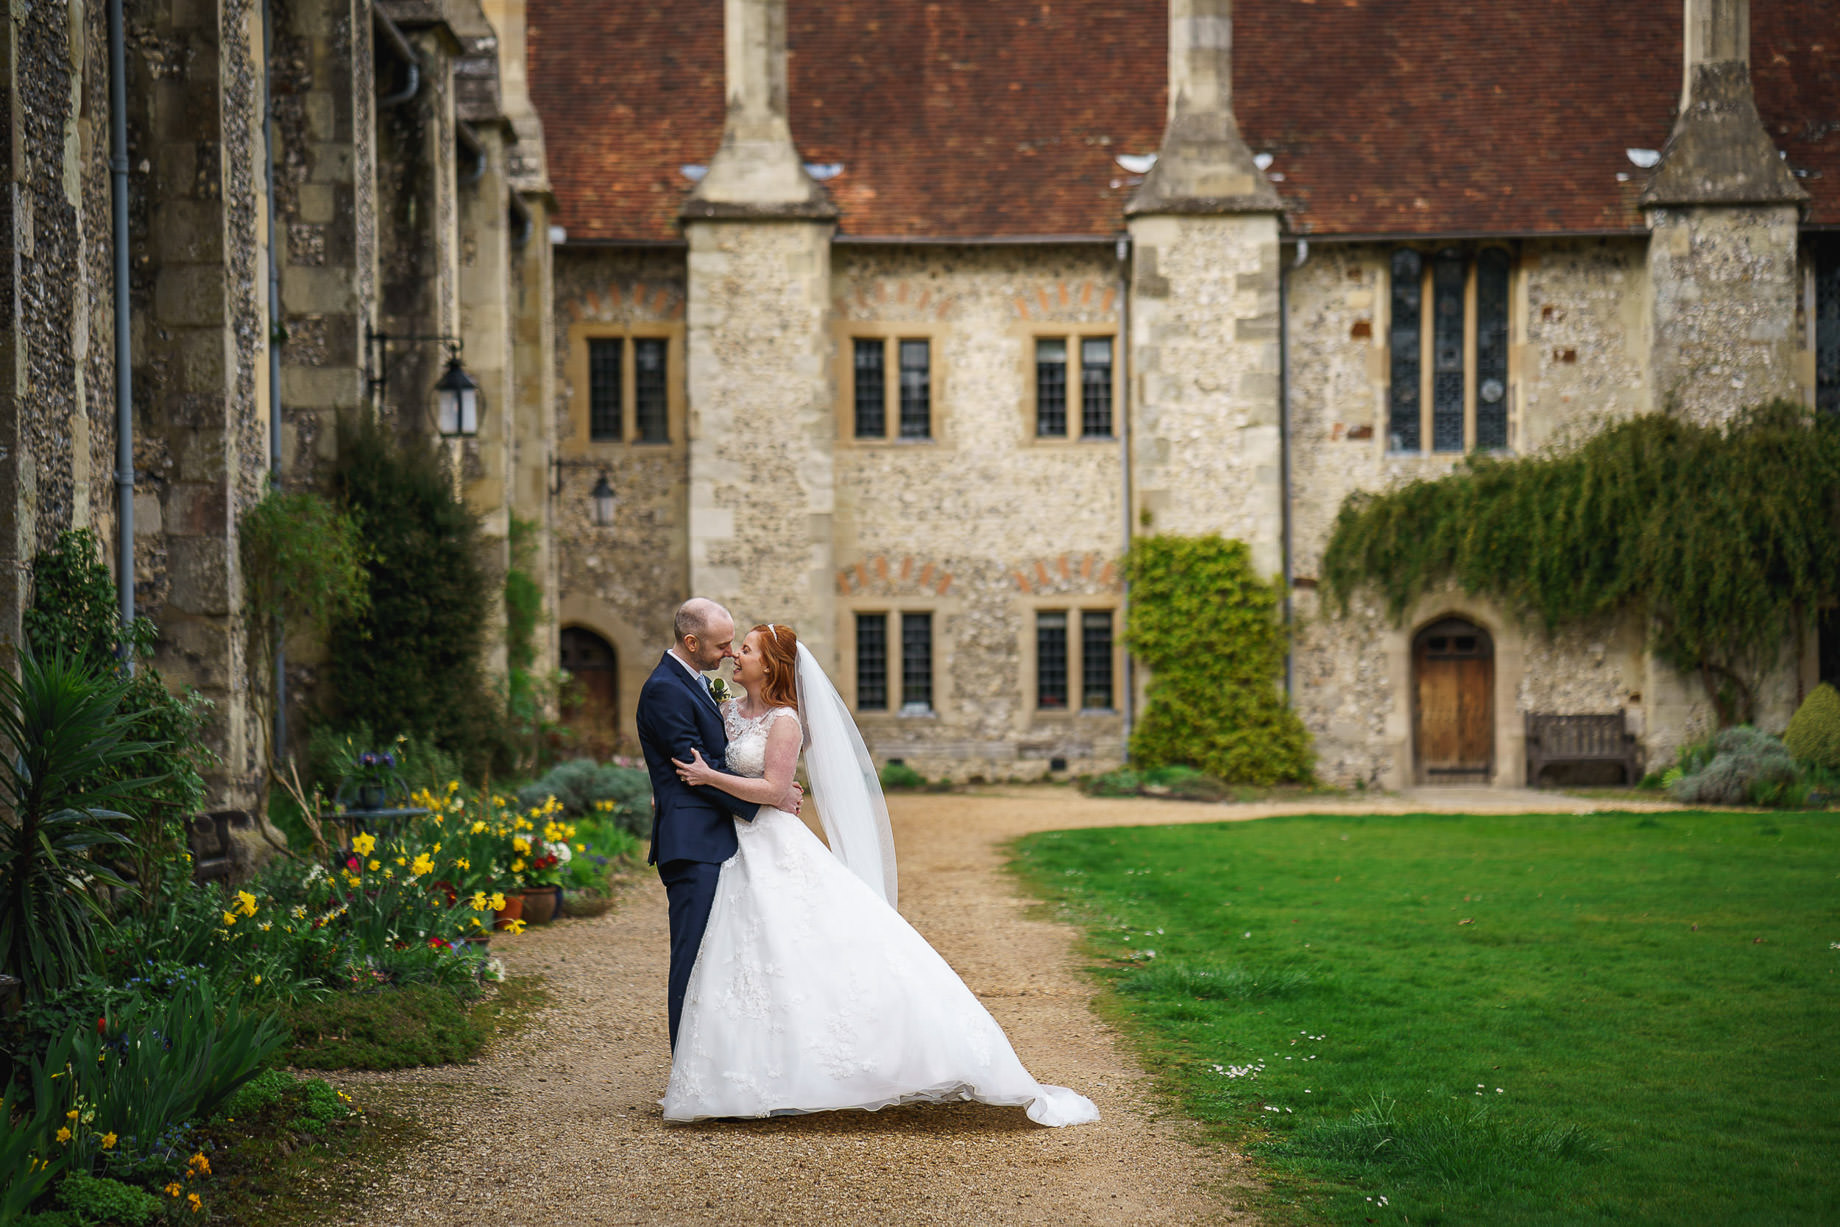 Winchester wedding photography by Guy Collier Photography